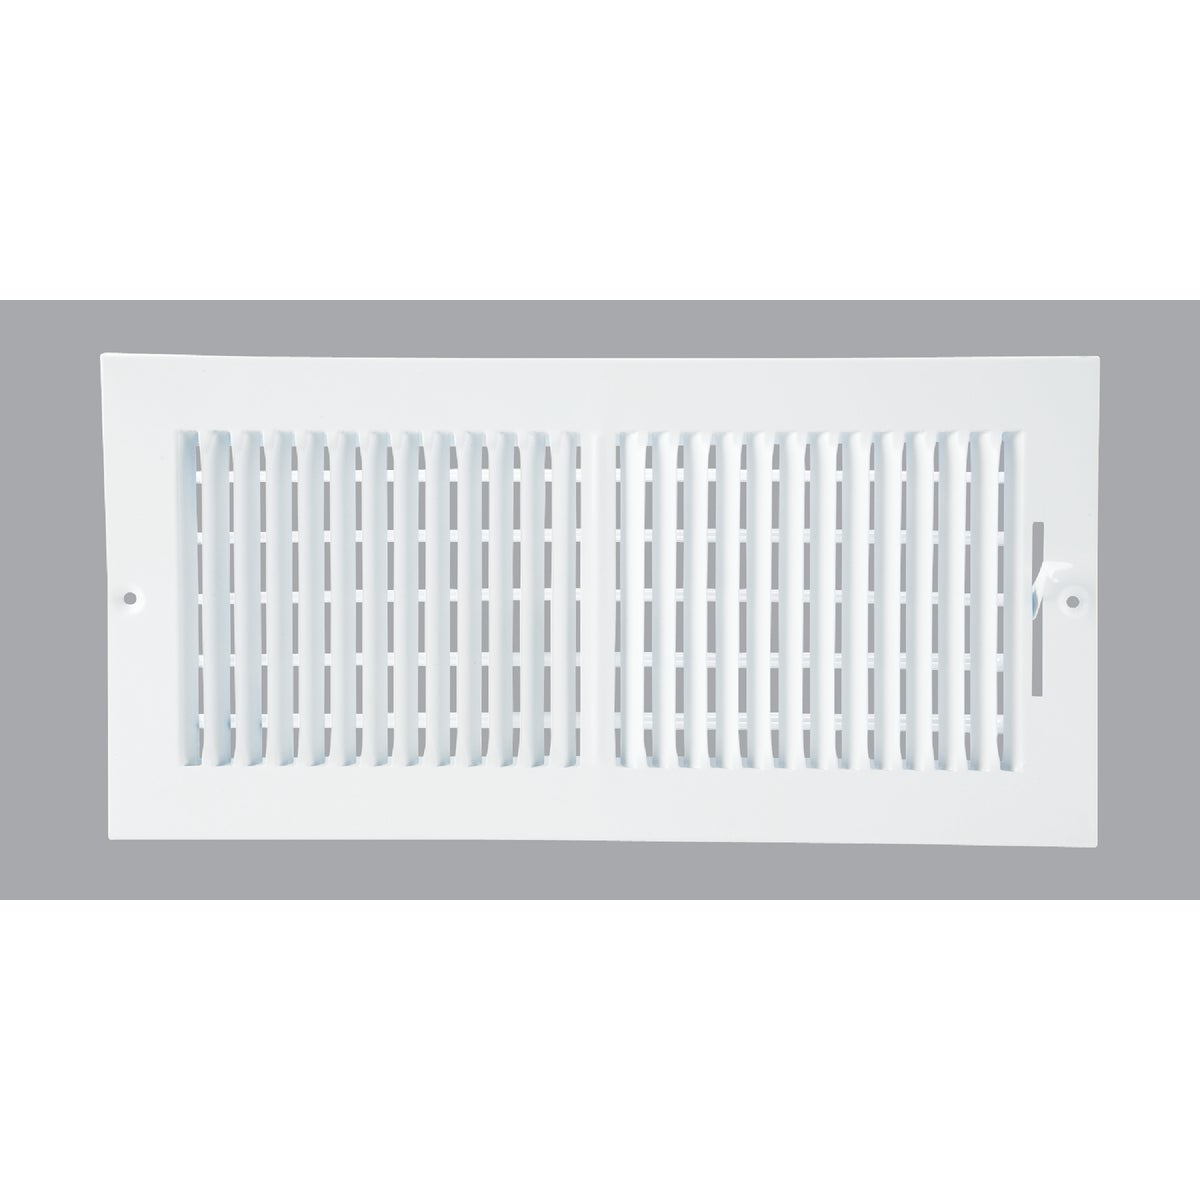 6X14 WHT WALL REGISTER - 2SW1406WH-B by Do it Best